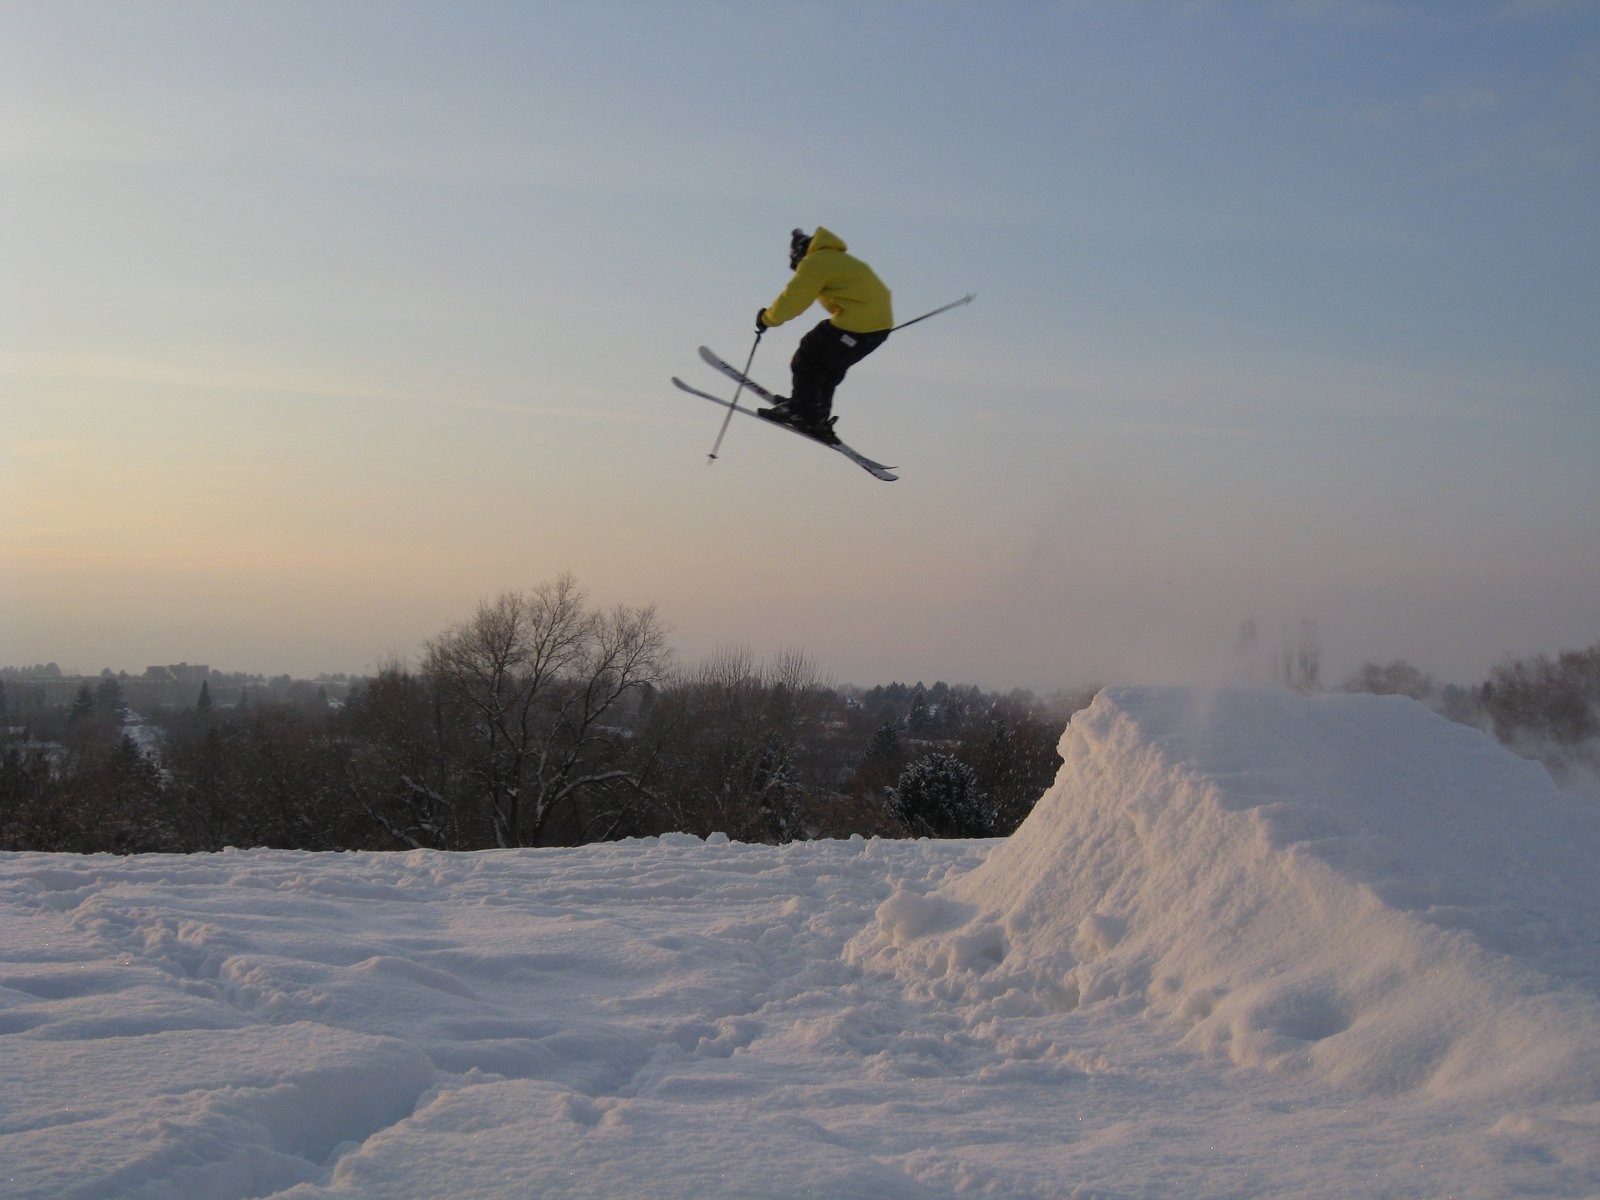 Eh jump made from snow